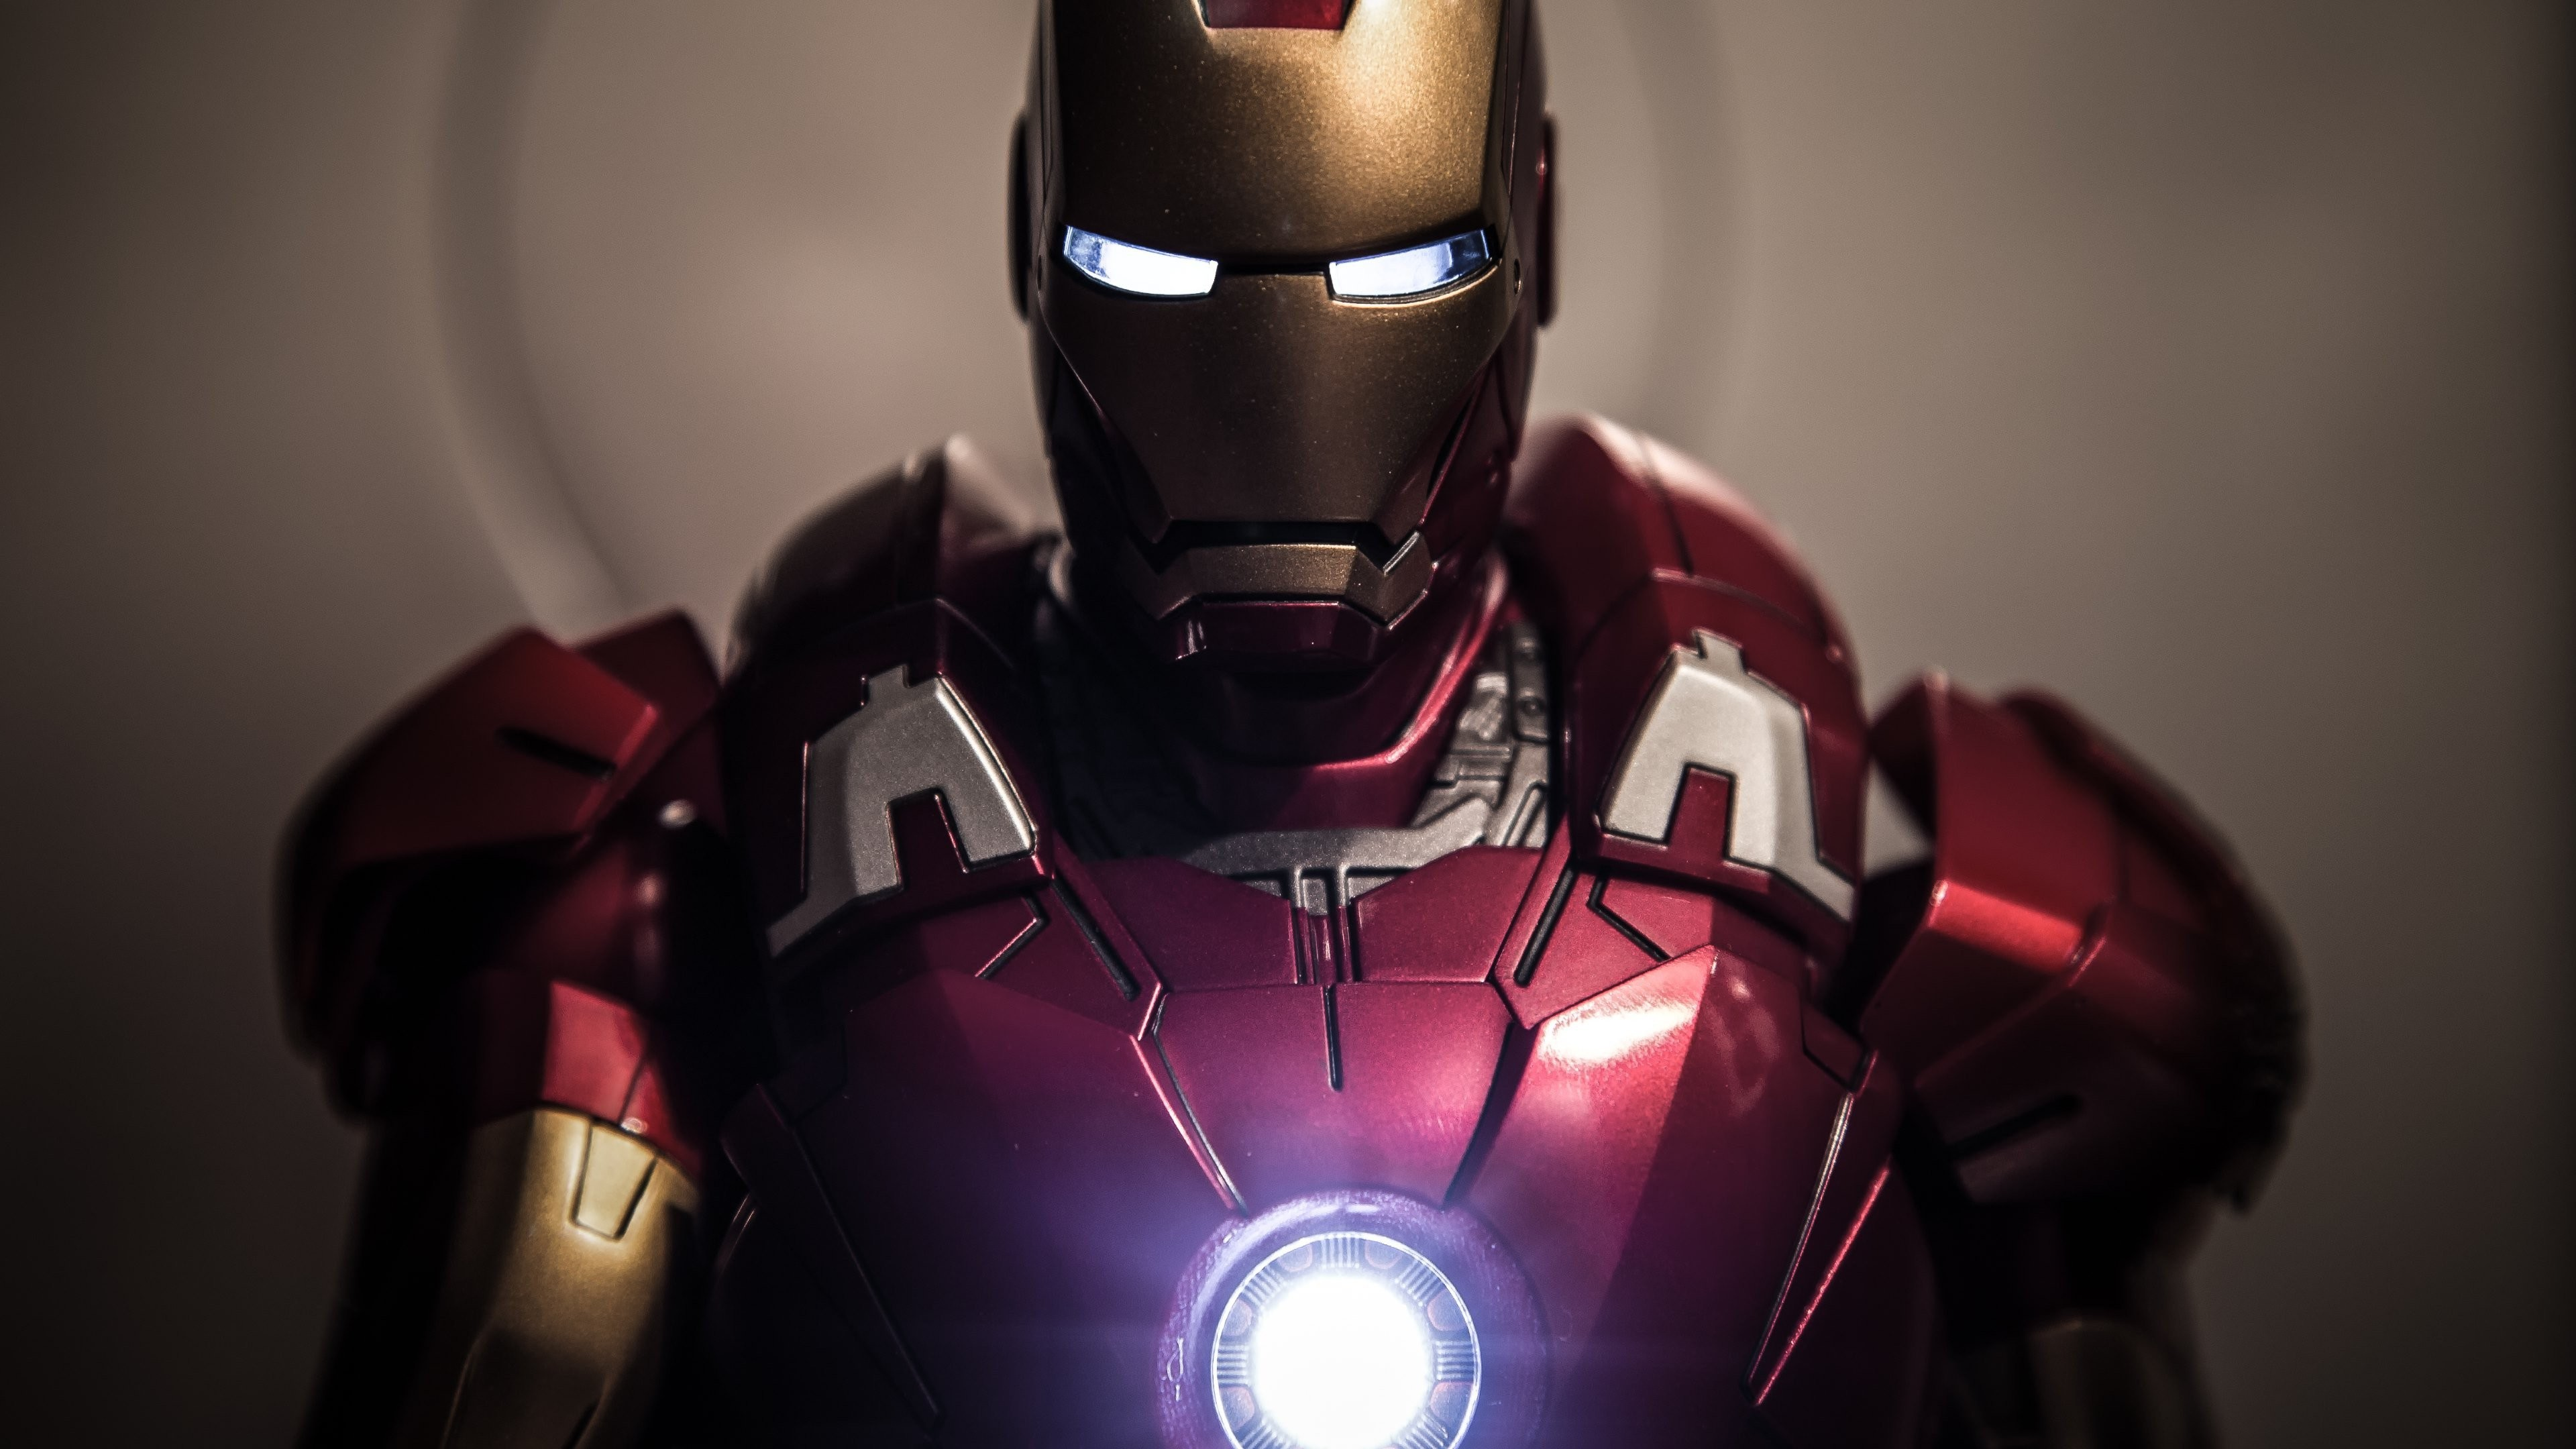 Iron Man Suits Wallpaper High Quality Resolution